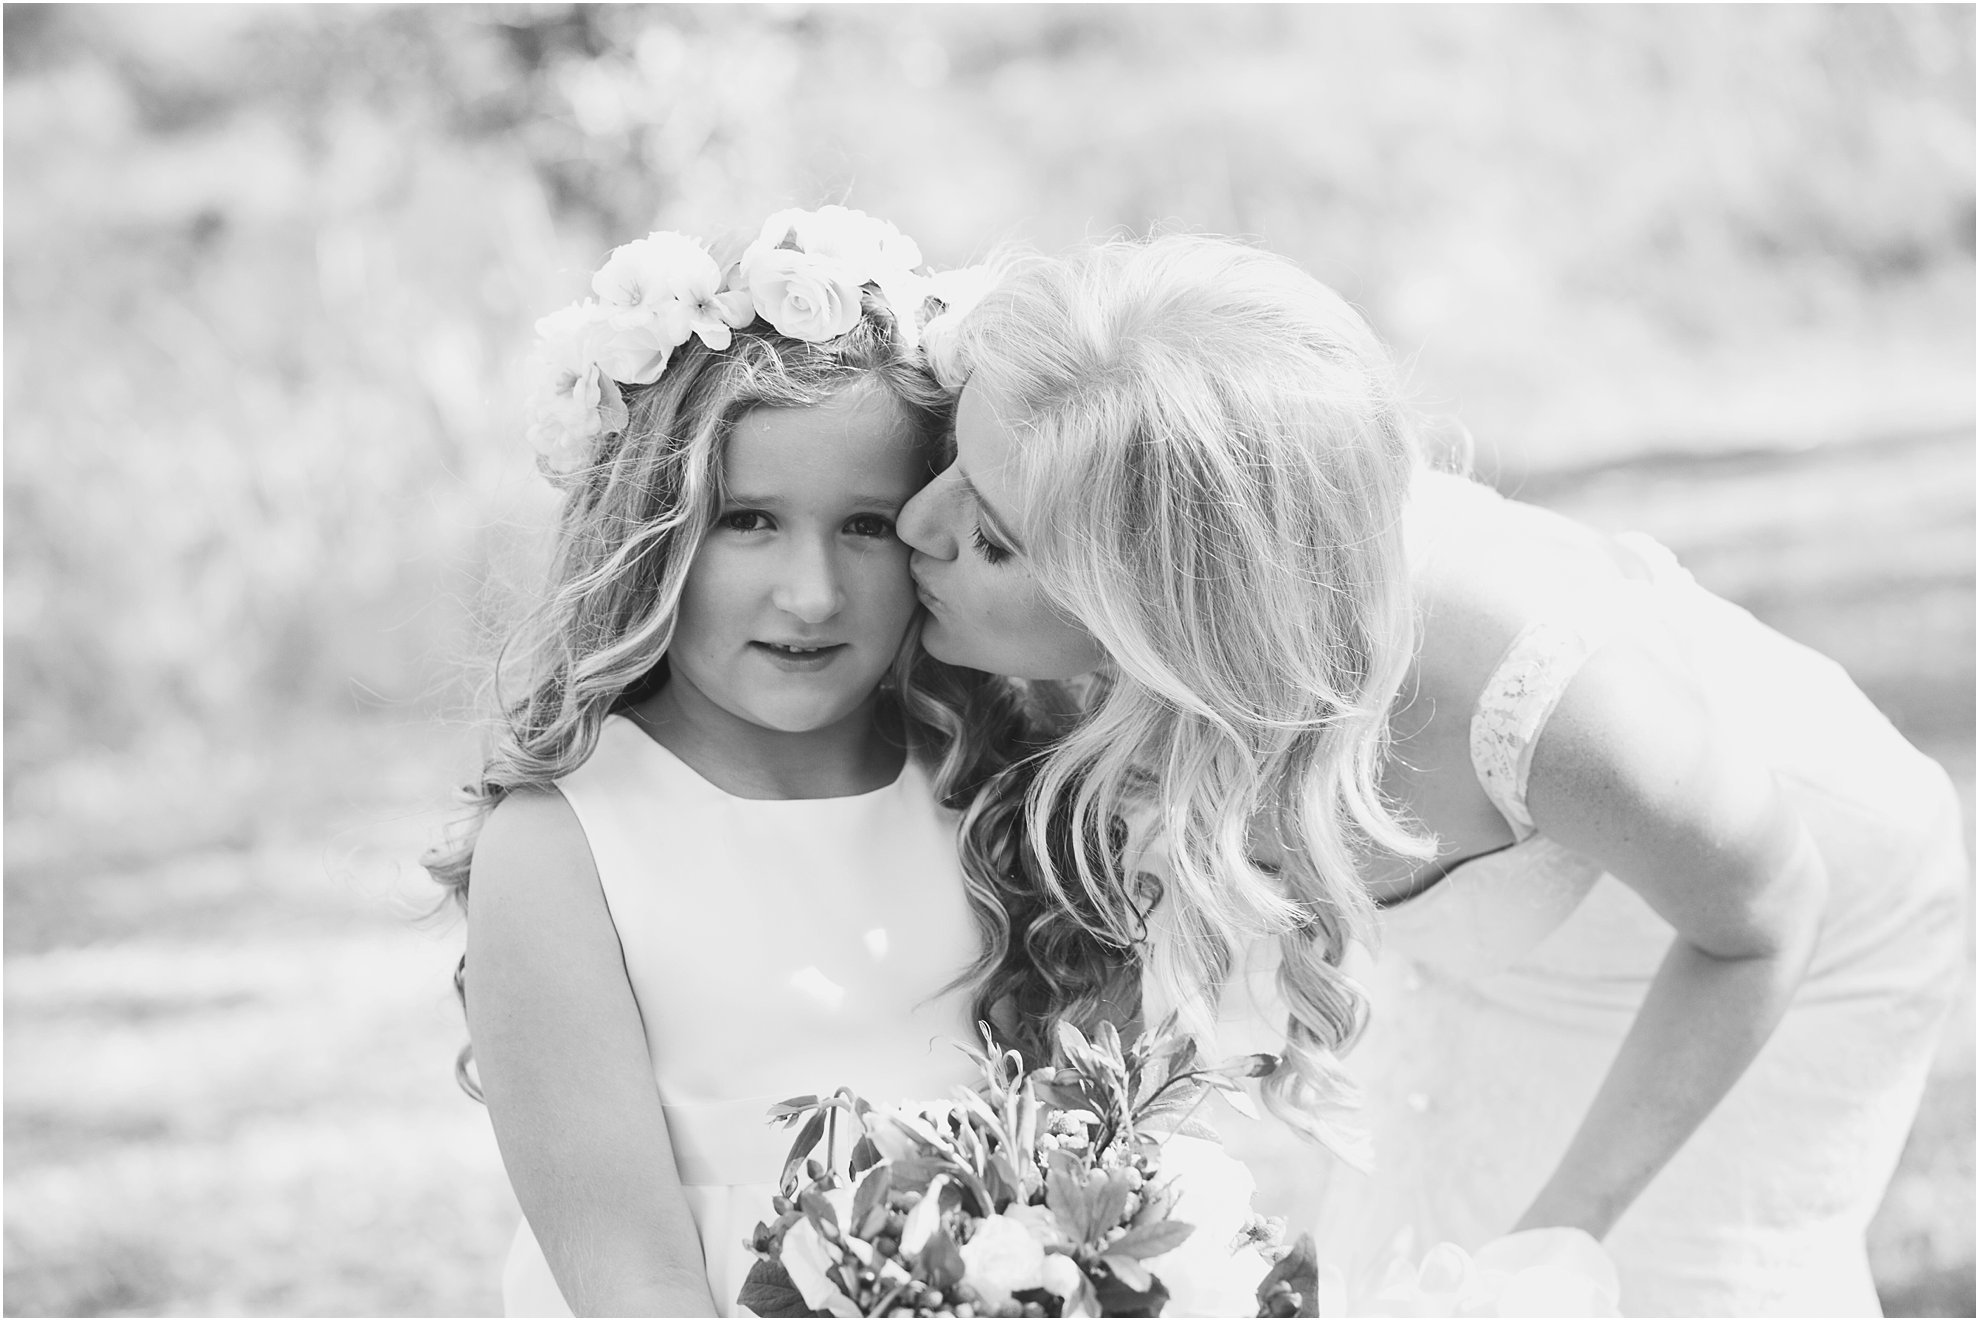 FIONA CLAIR PHOTOGRAPHY Jean & Natalie Swart 01 06 2013_0041